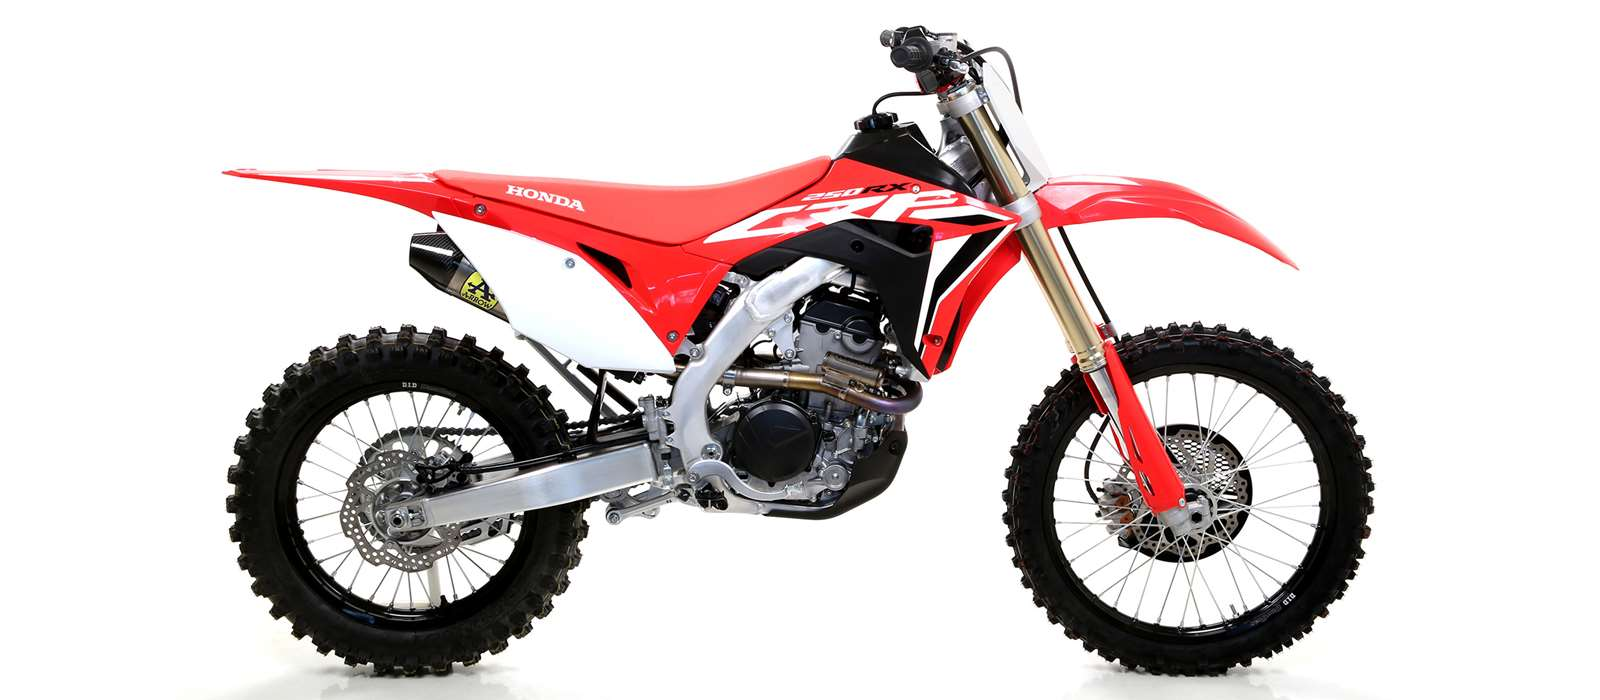 MX Comp - Honda, Exhaust, Arrow - Averys Motorcycles